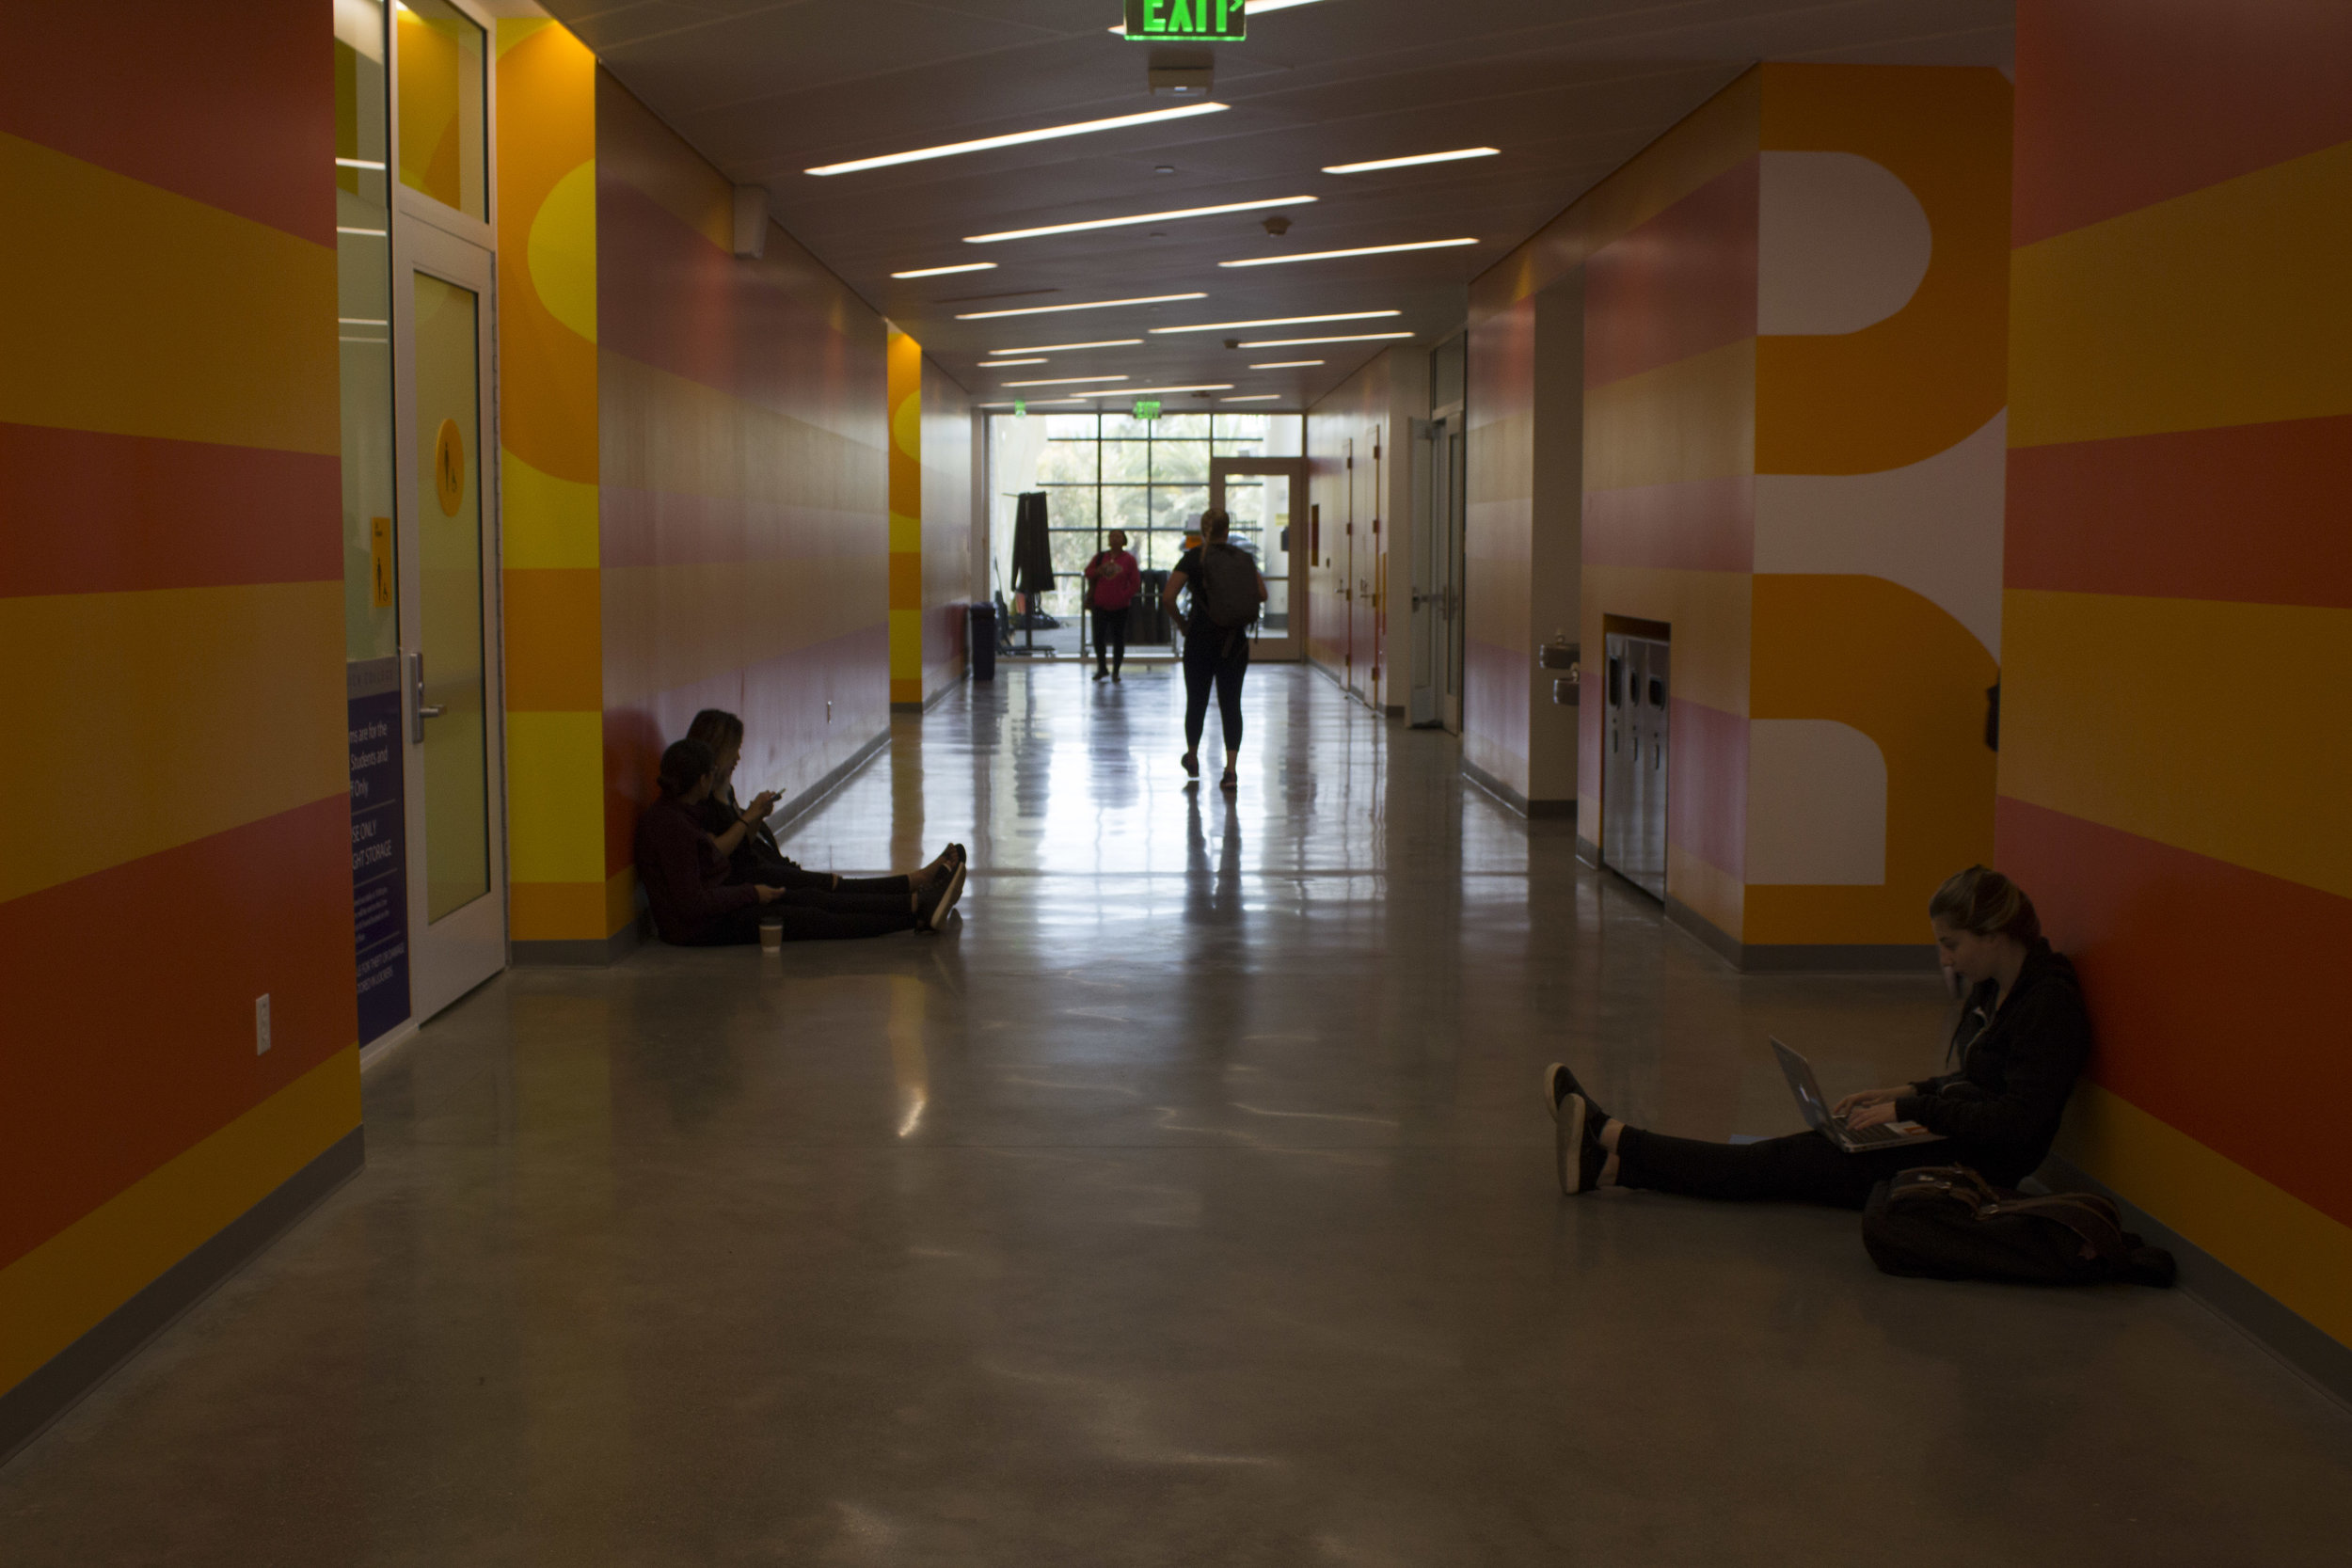 All new Core Performance Center building at Santa Monica College, Calif. The second floor and its orange color dominance is the fitness, yoga and gym level. Photo taken on April 3, 2017. Emeline Moquillon, staff photographer.